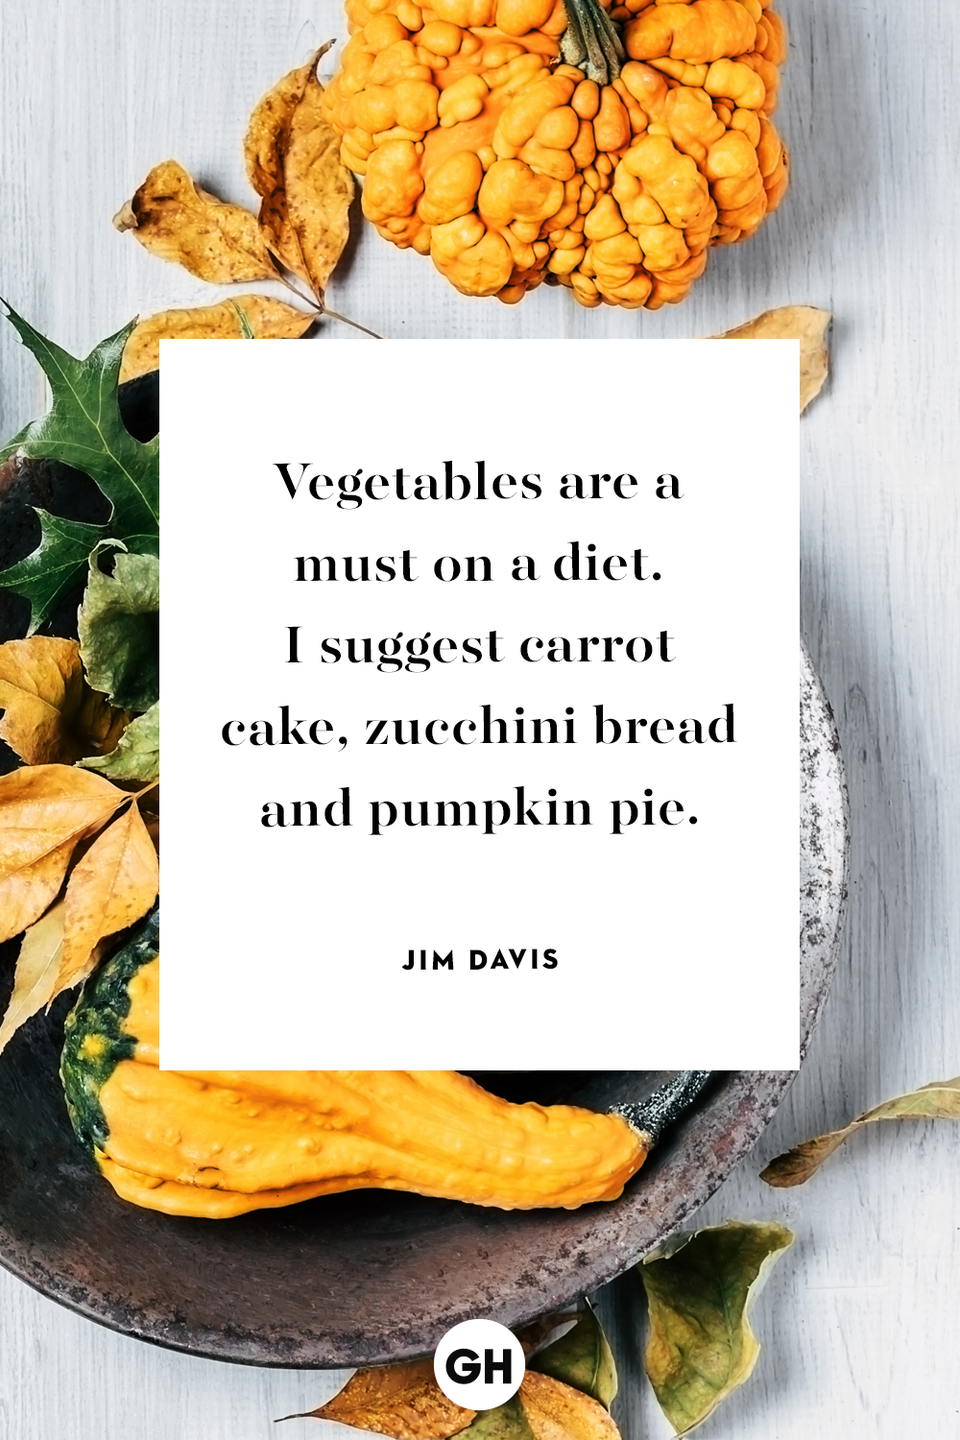 """<p><a href=""""https://www.goodhousekeeping.com/holidays/thanksgiving-ideas/g28772940/thanksgiving-vegetable-side-dishes/"""" rel=""""nofollow noopener"""" target=""""_blank"""" data-ylk=""""slk:Vegetables"""" class=""""link rapid-noclick-resp"""">Vegetables </a>are a must on a diet. I suggest carrot cake, zucchini bread, and <a href=""""https://www.goodhousekeeping.com/holidays/thanksgiving-ideas/g1532/thanksgiving-desserts/"""" rel=""""nofollow noopener"""" target=""""_blank"""" data-ylk=""""slk:pumpkin pie"""" class=""""link rapid-noclick-resp"""">pumpkin pie</a>.</p>"""